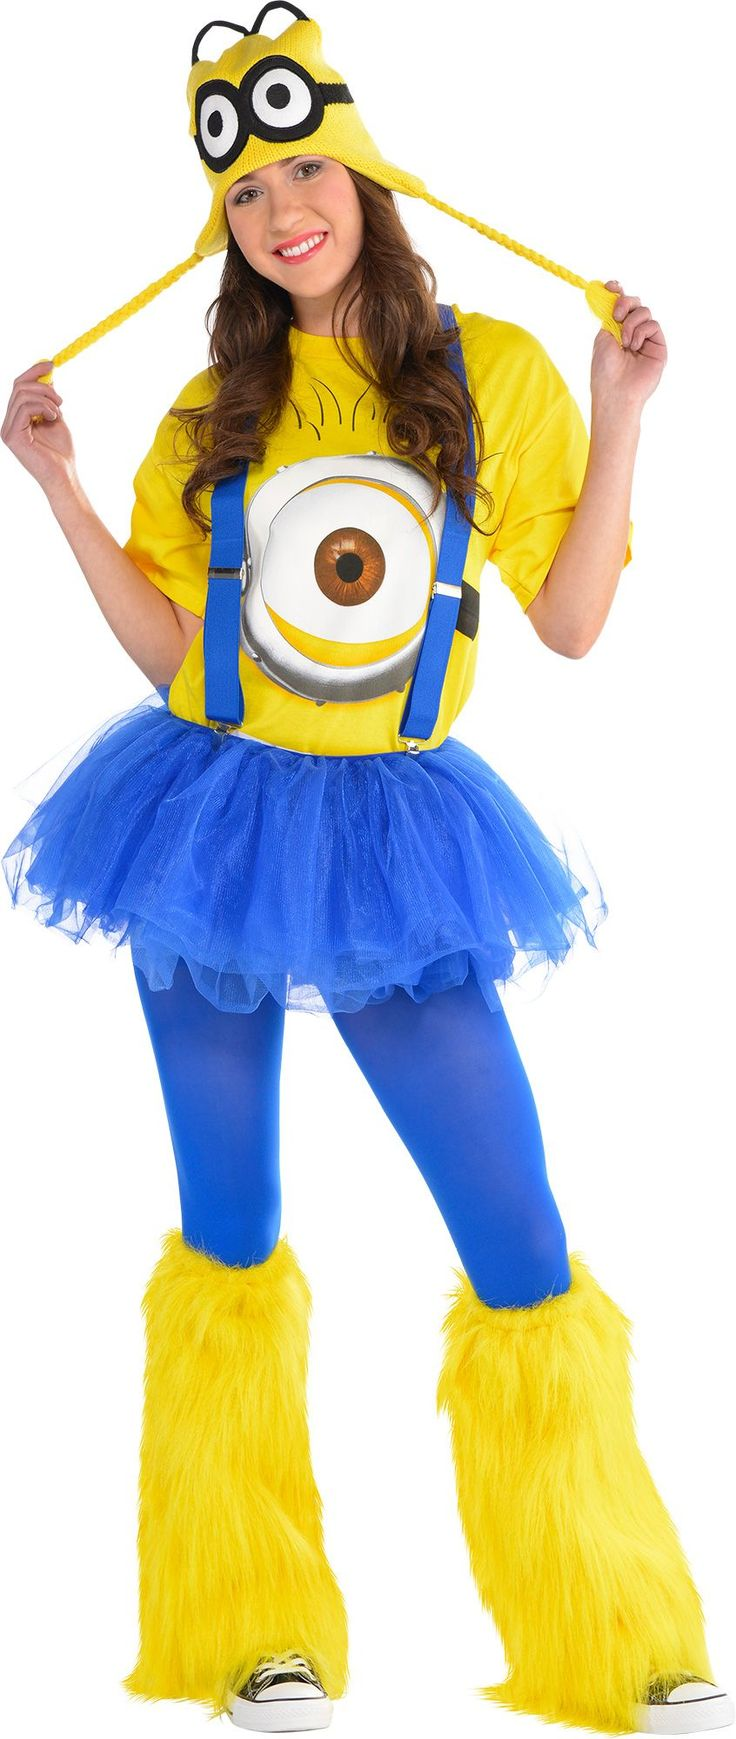 Make Your Costume Womens Minion 3 Ideas for the House